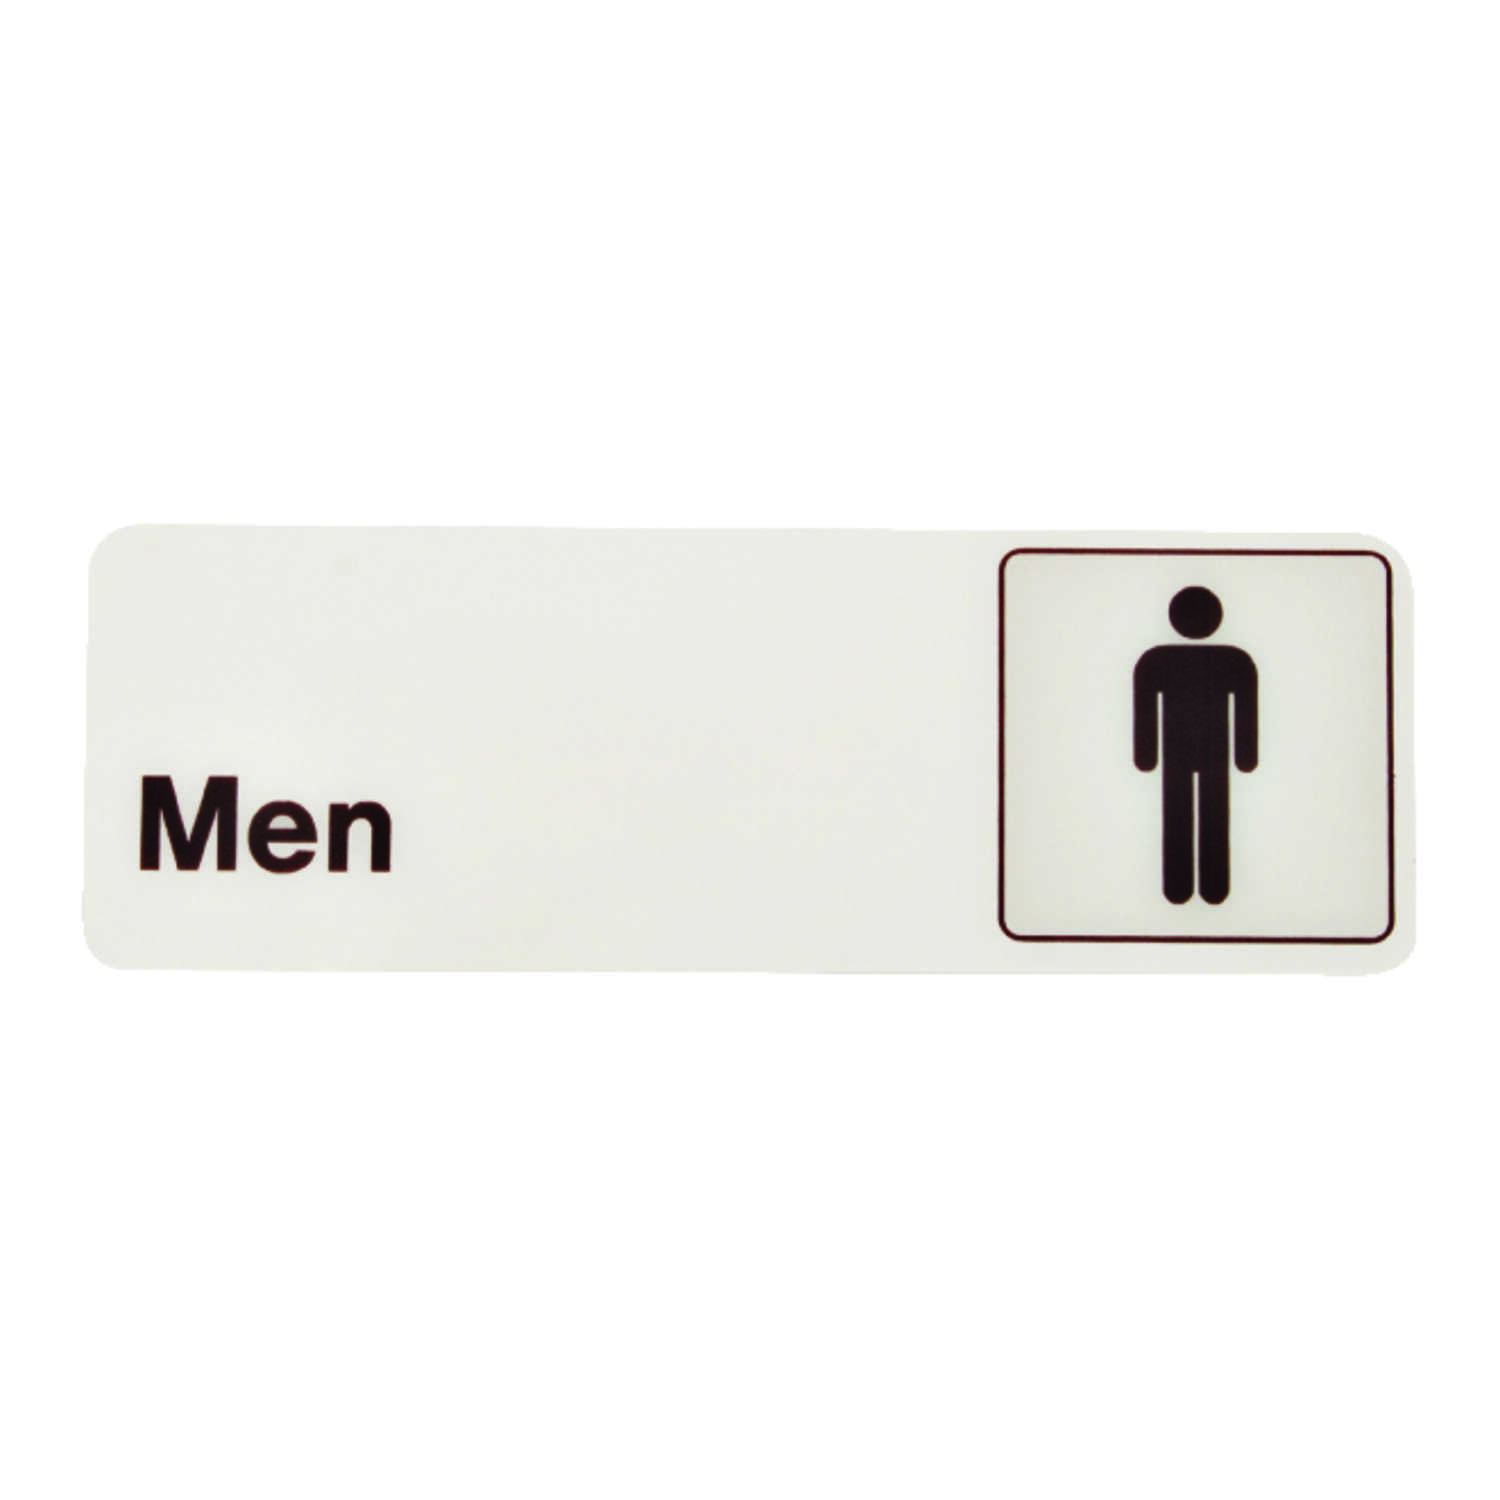 Hy-Ko  English  Men  3 in. H x 9 in. W Sign  Plastic